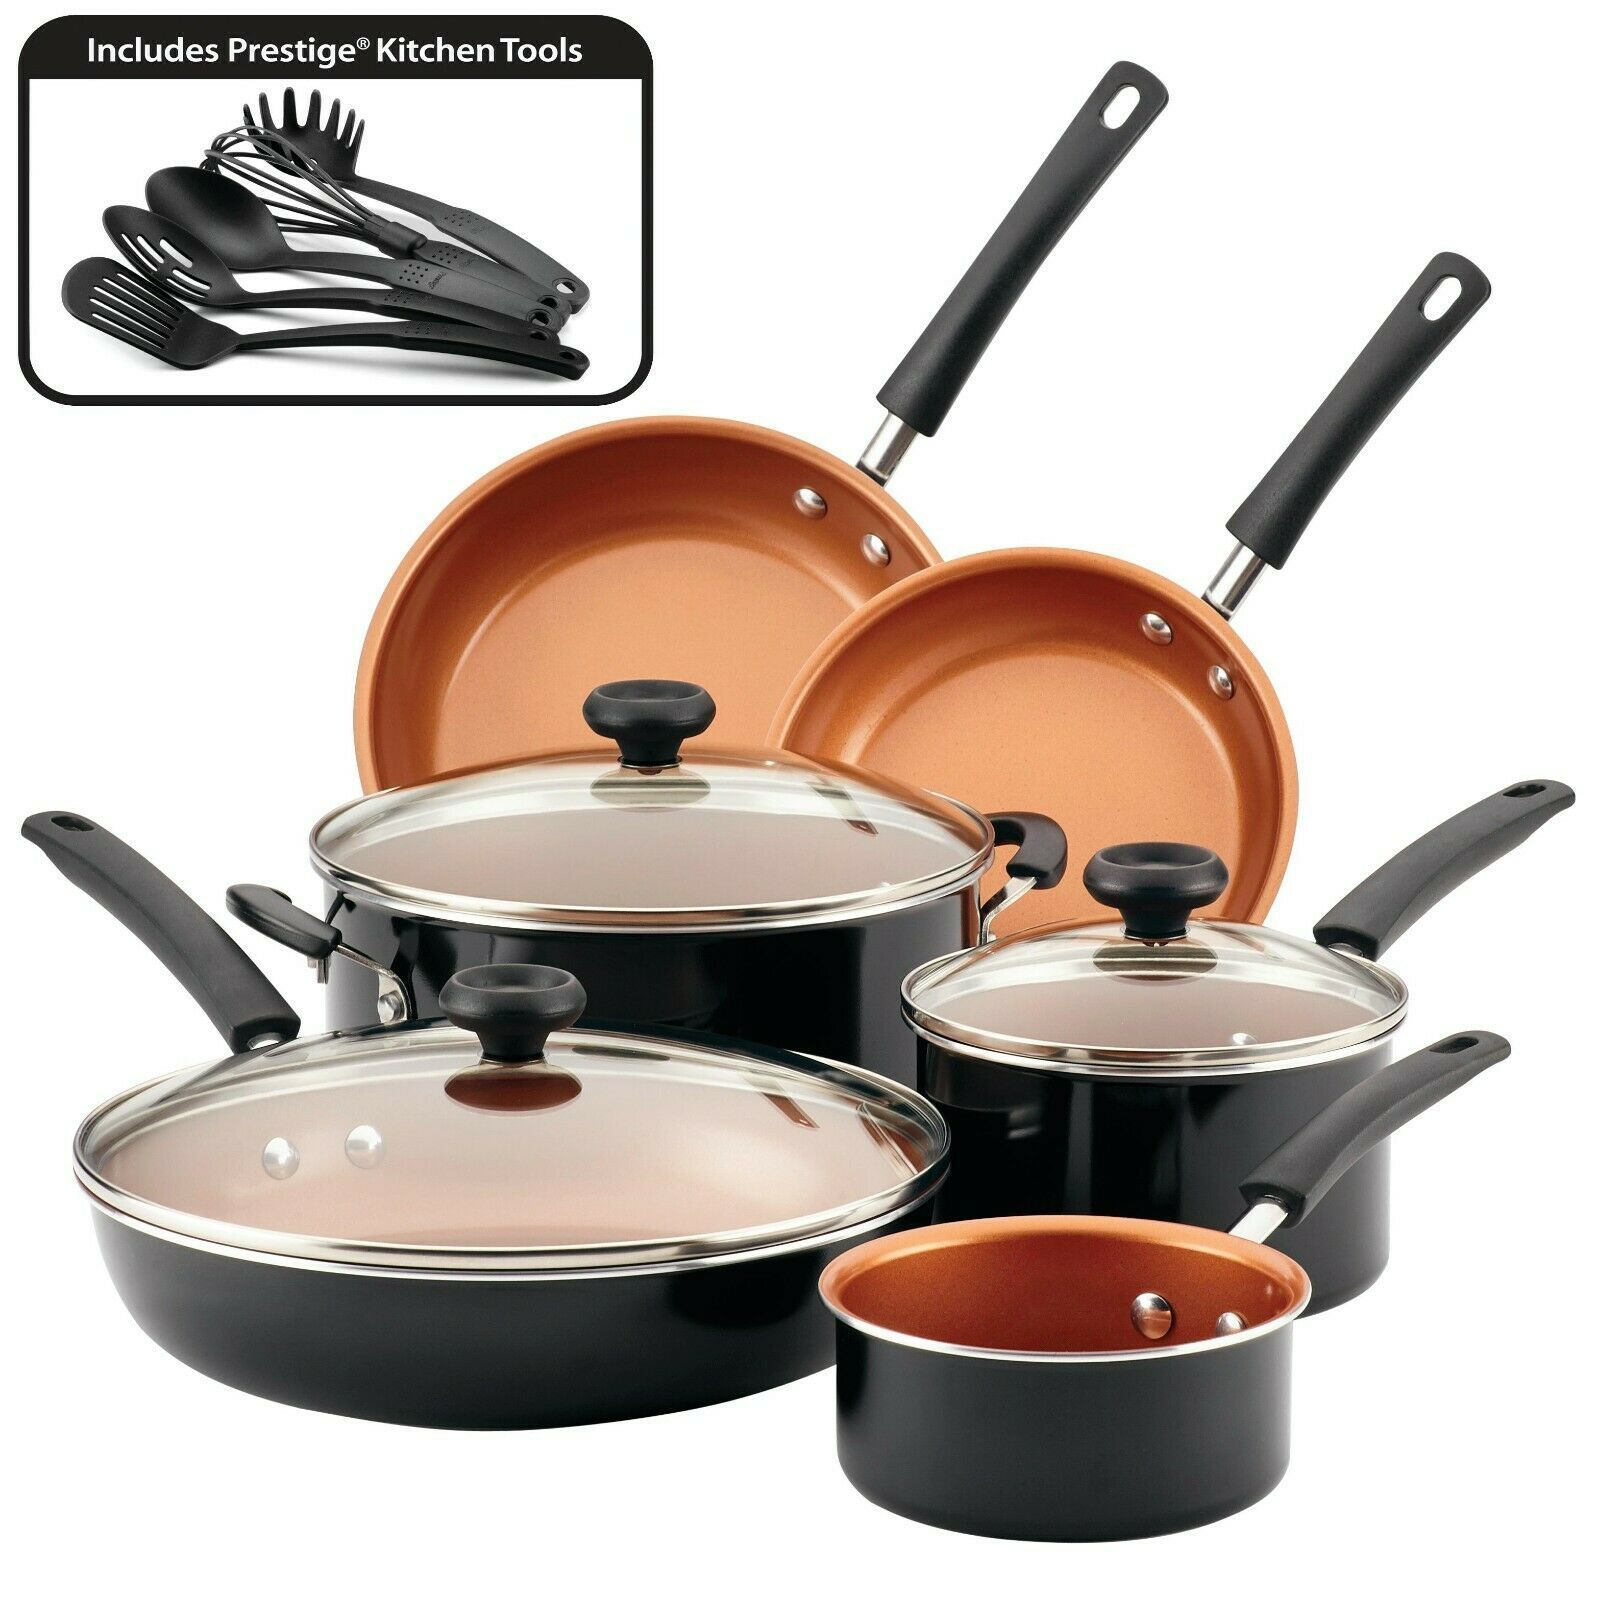 Cookware Set Farberware Ceramic Nonstick Kitchen Pots And Pans